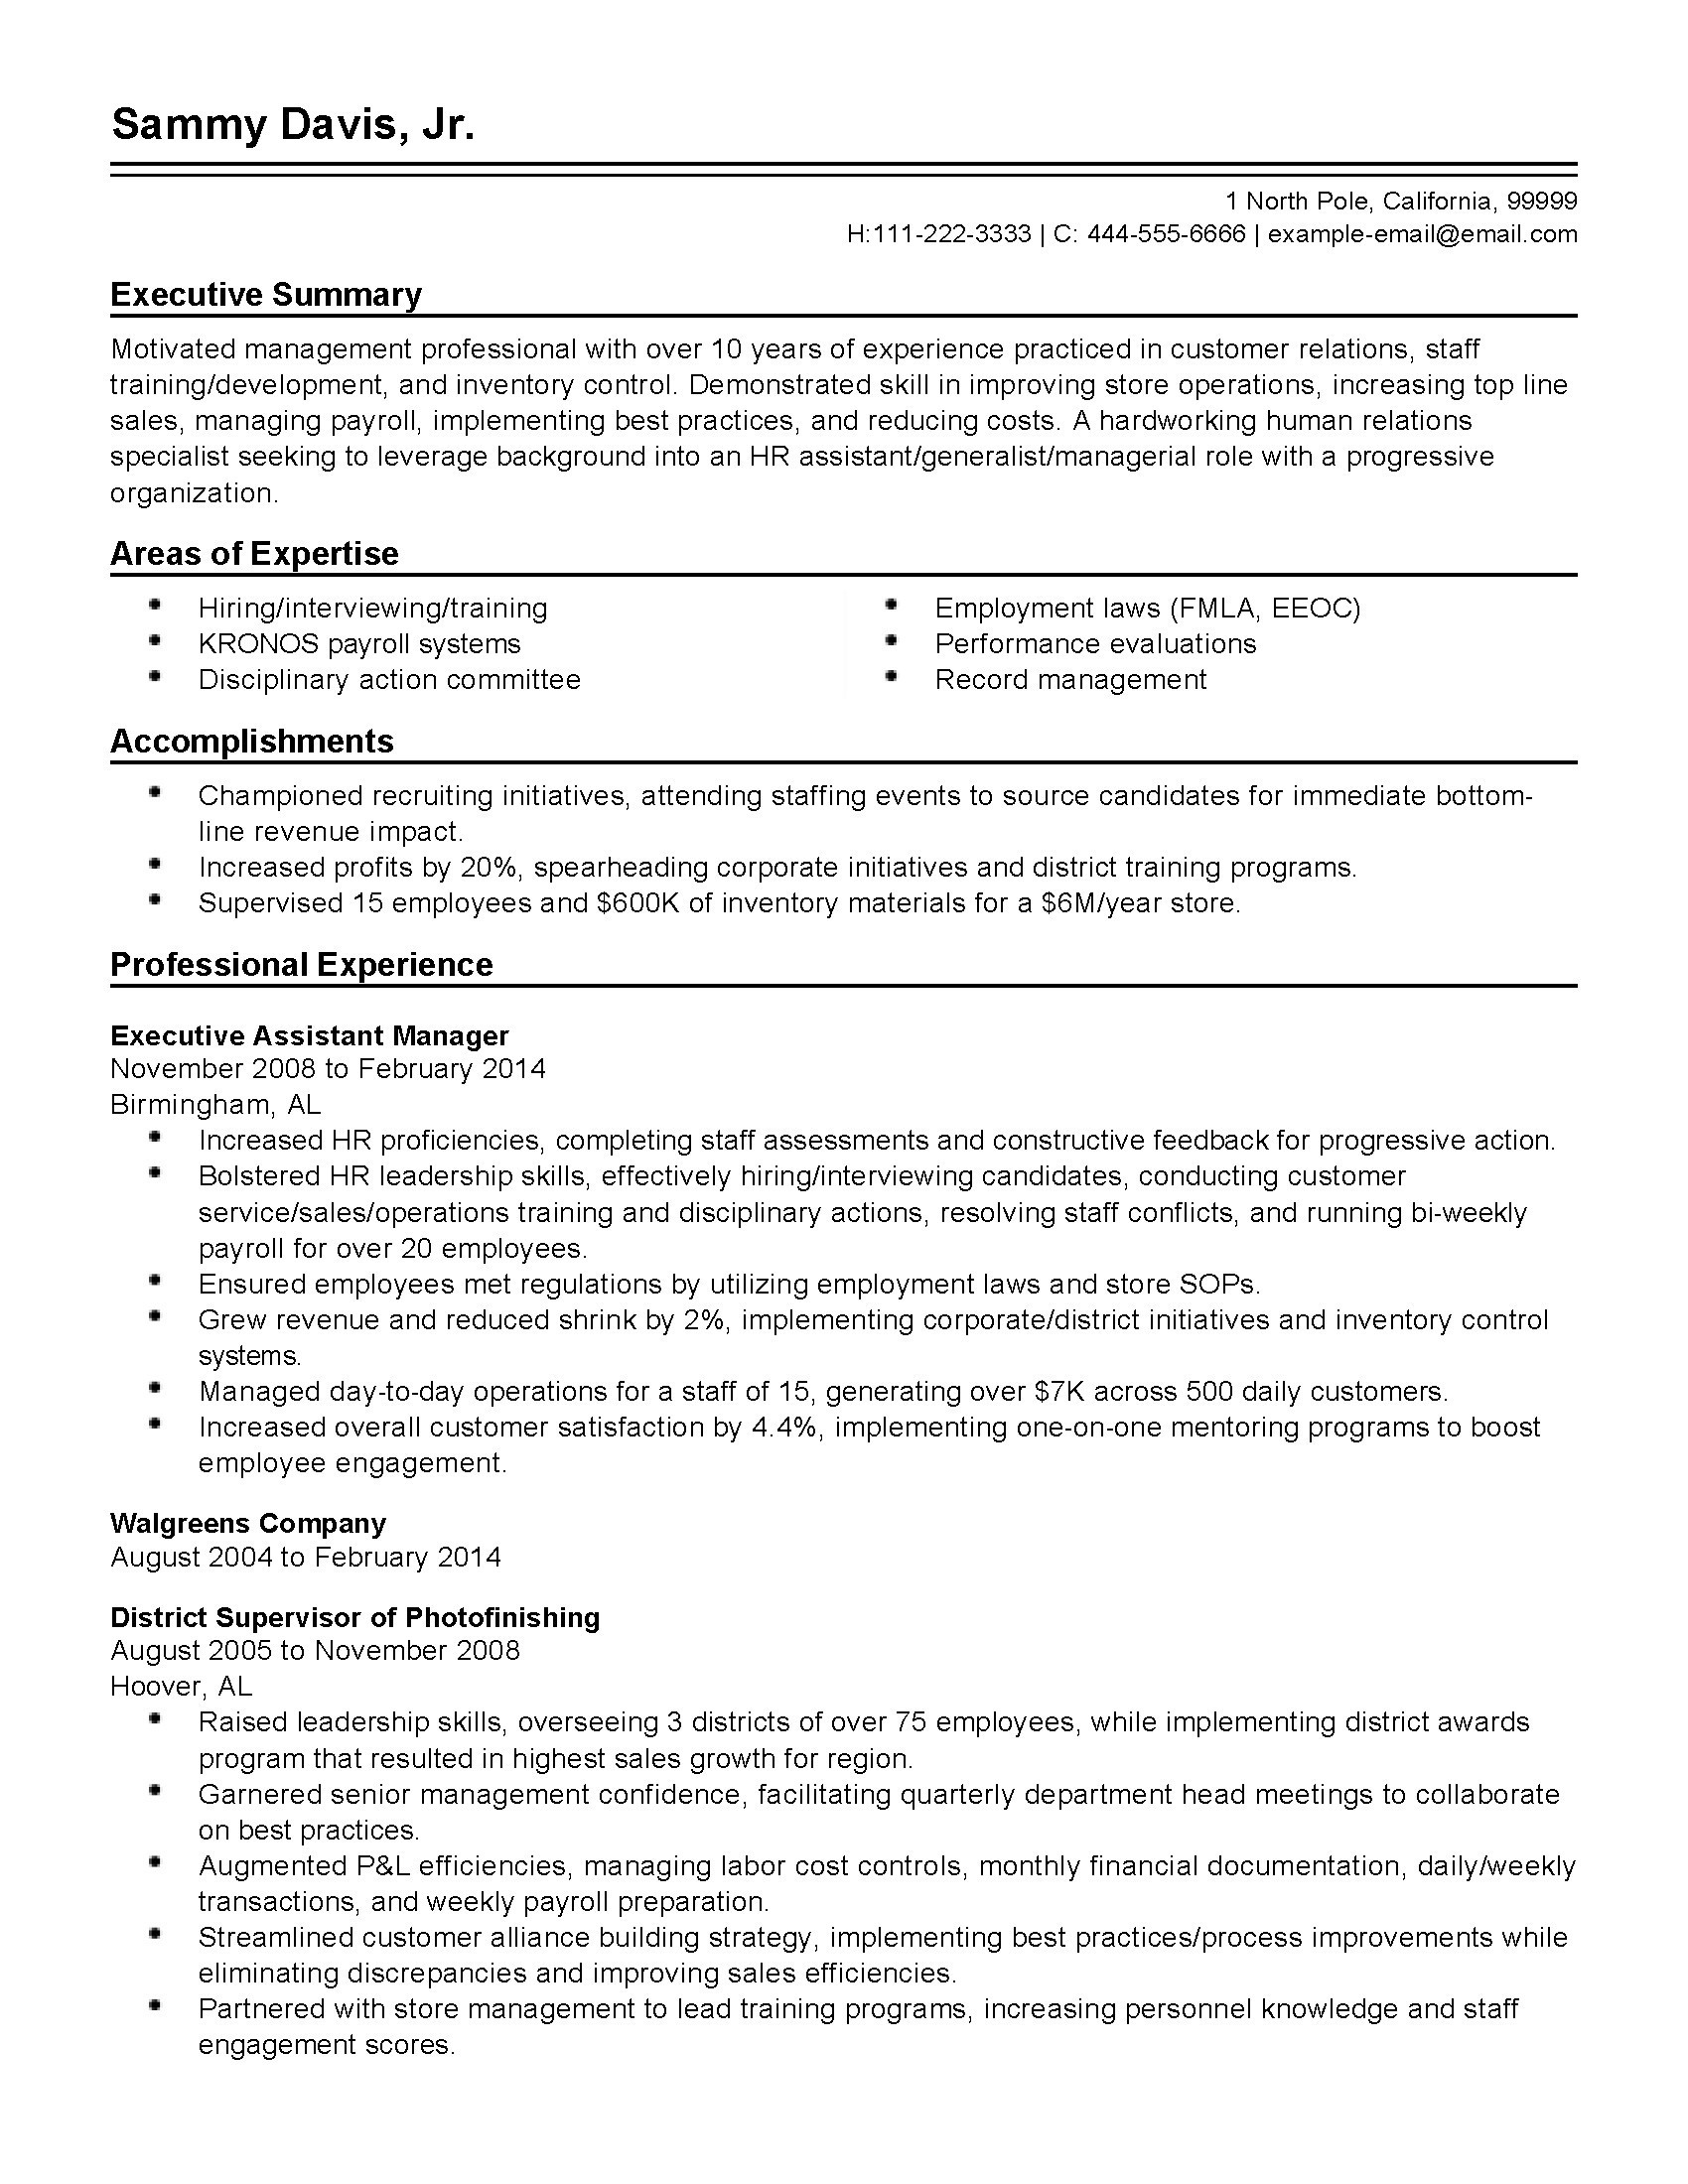 Military Resume Writing - Military Resume Writers Best Resume Writer software Unique